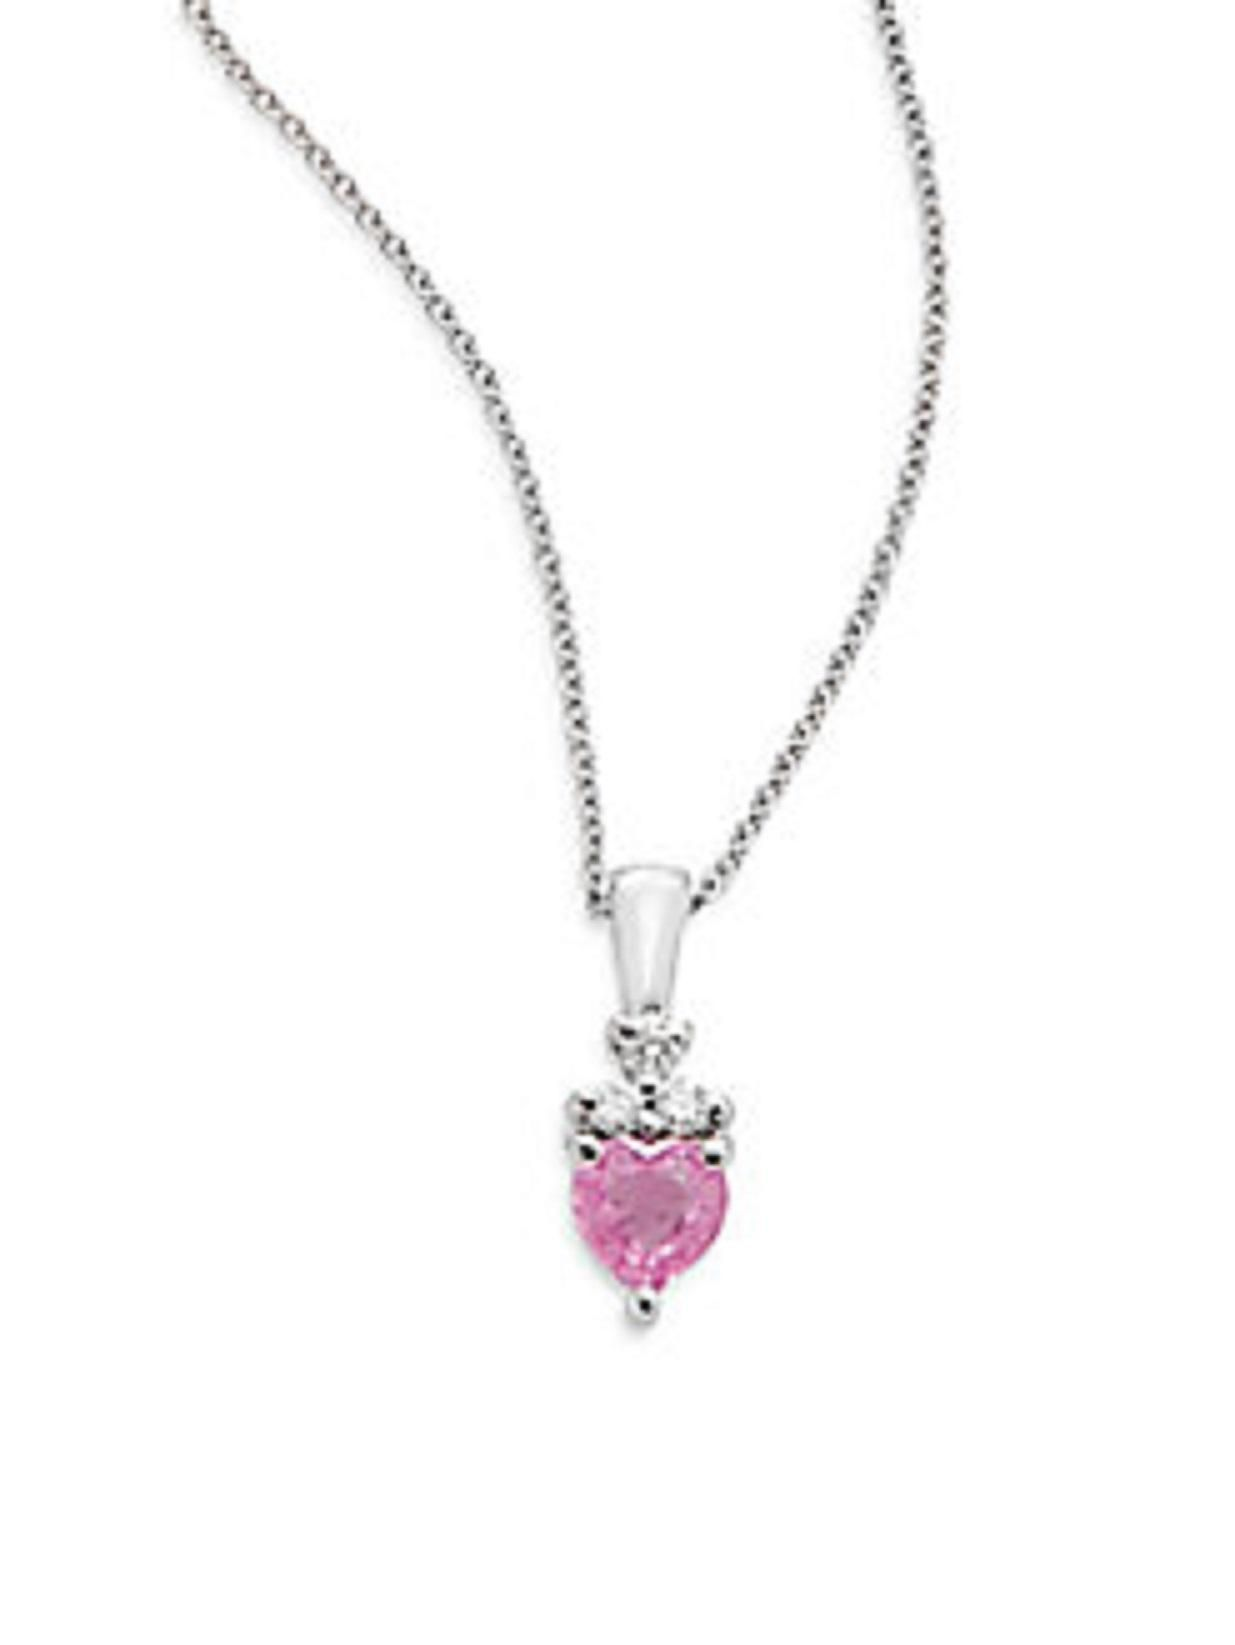 be73b4bc7 Pink Sapphire, Diamond & 14K White Gold Necklace. Free shipping and ...